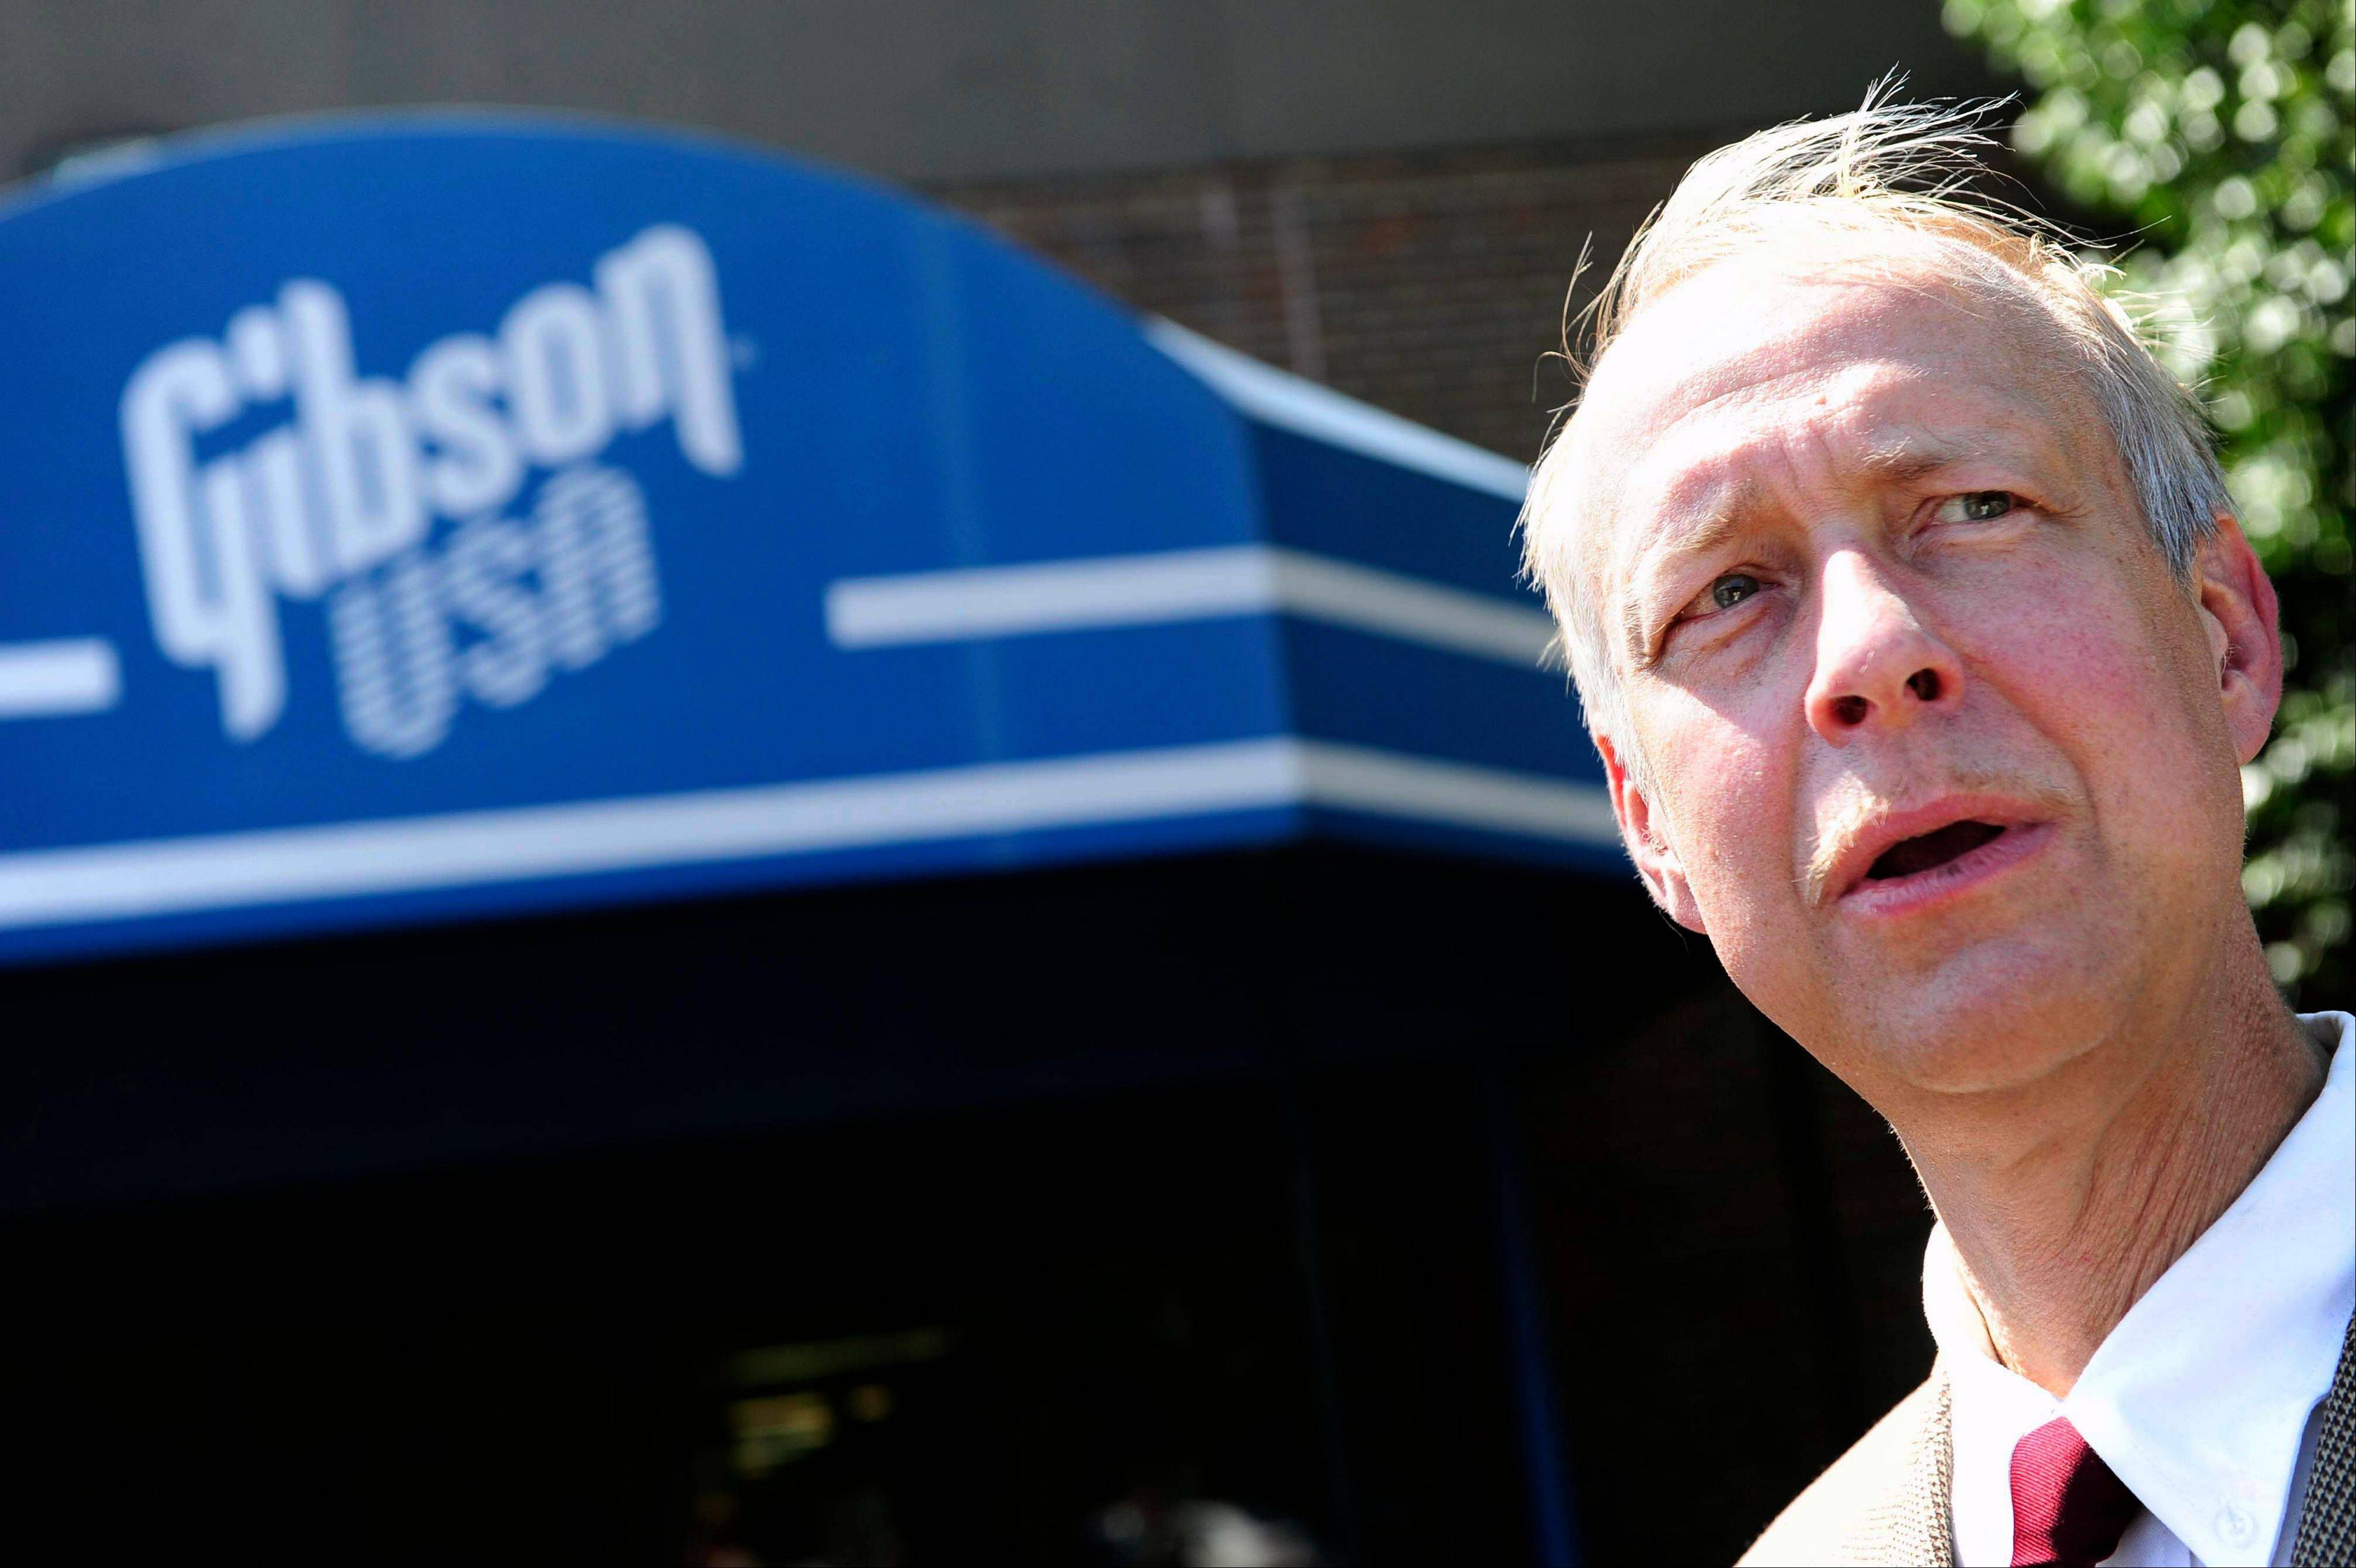 Federal prosecutors say a deal has been reached to drop the criminal case against Gibson Guitar Corp. after the instrument maker acknowledged its exotic wood imports violated environmental laws. Above is Gibson Guitar CEO Henry Juszkiewicz.